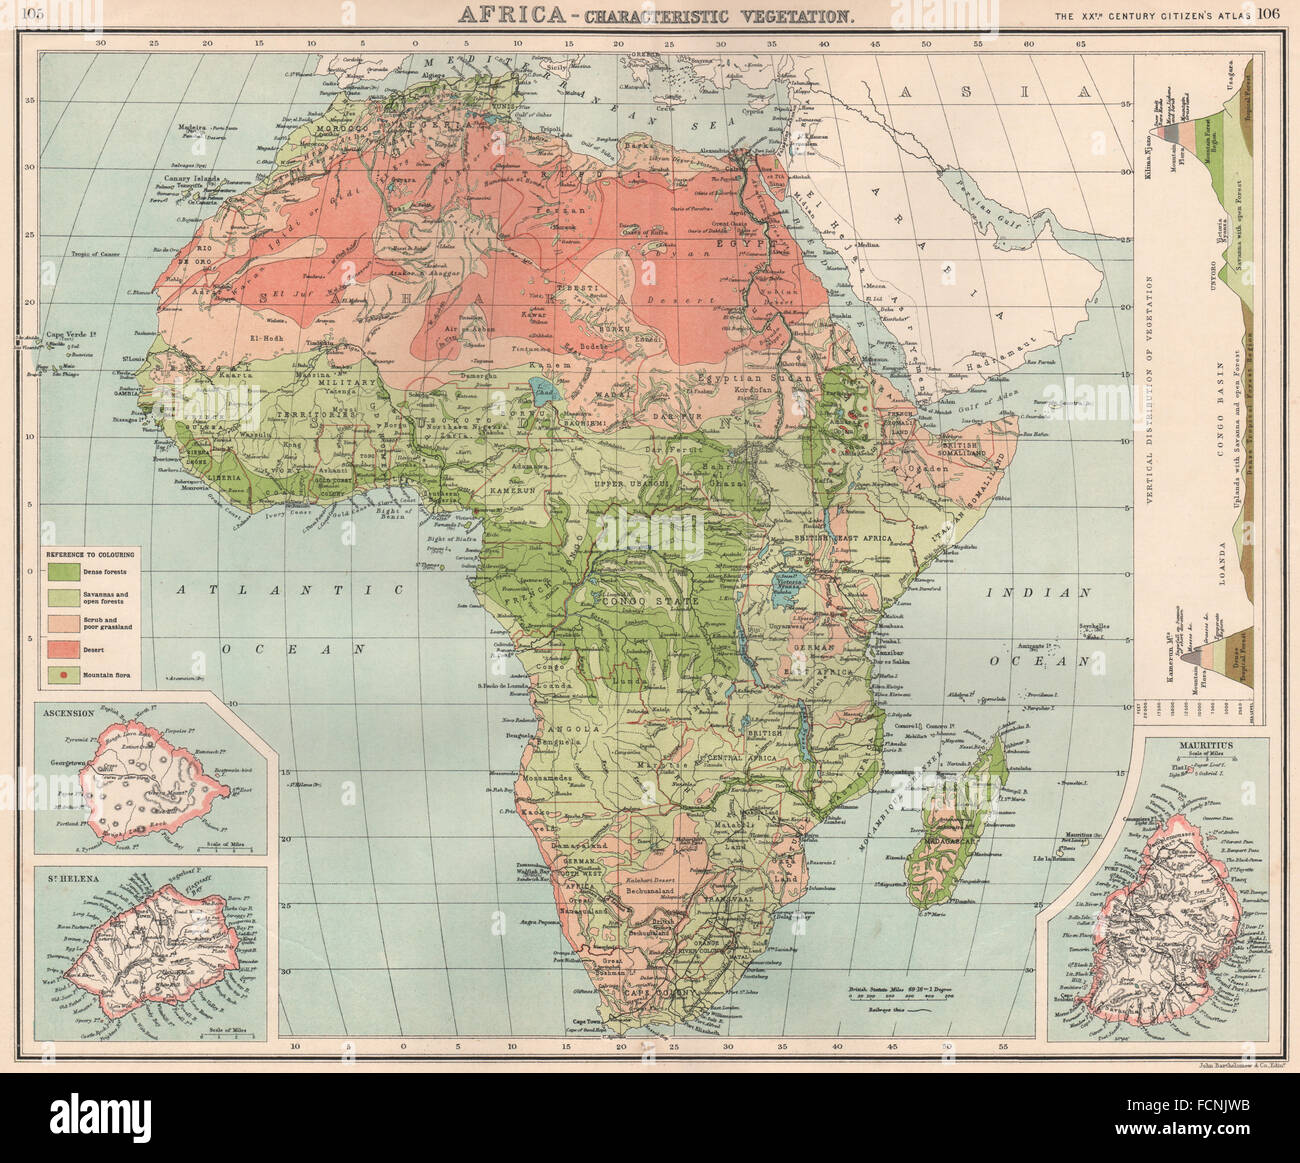 Map Of Africa Vegetation.Africa Vegetation With Vertical Distribution Of Vegetation Stock